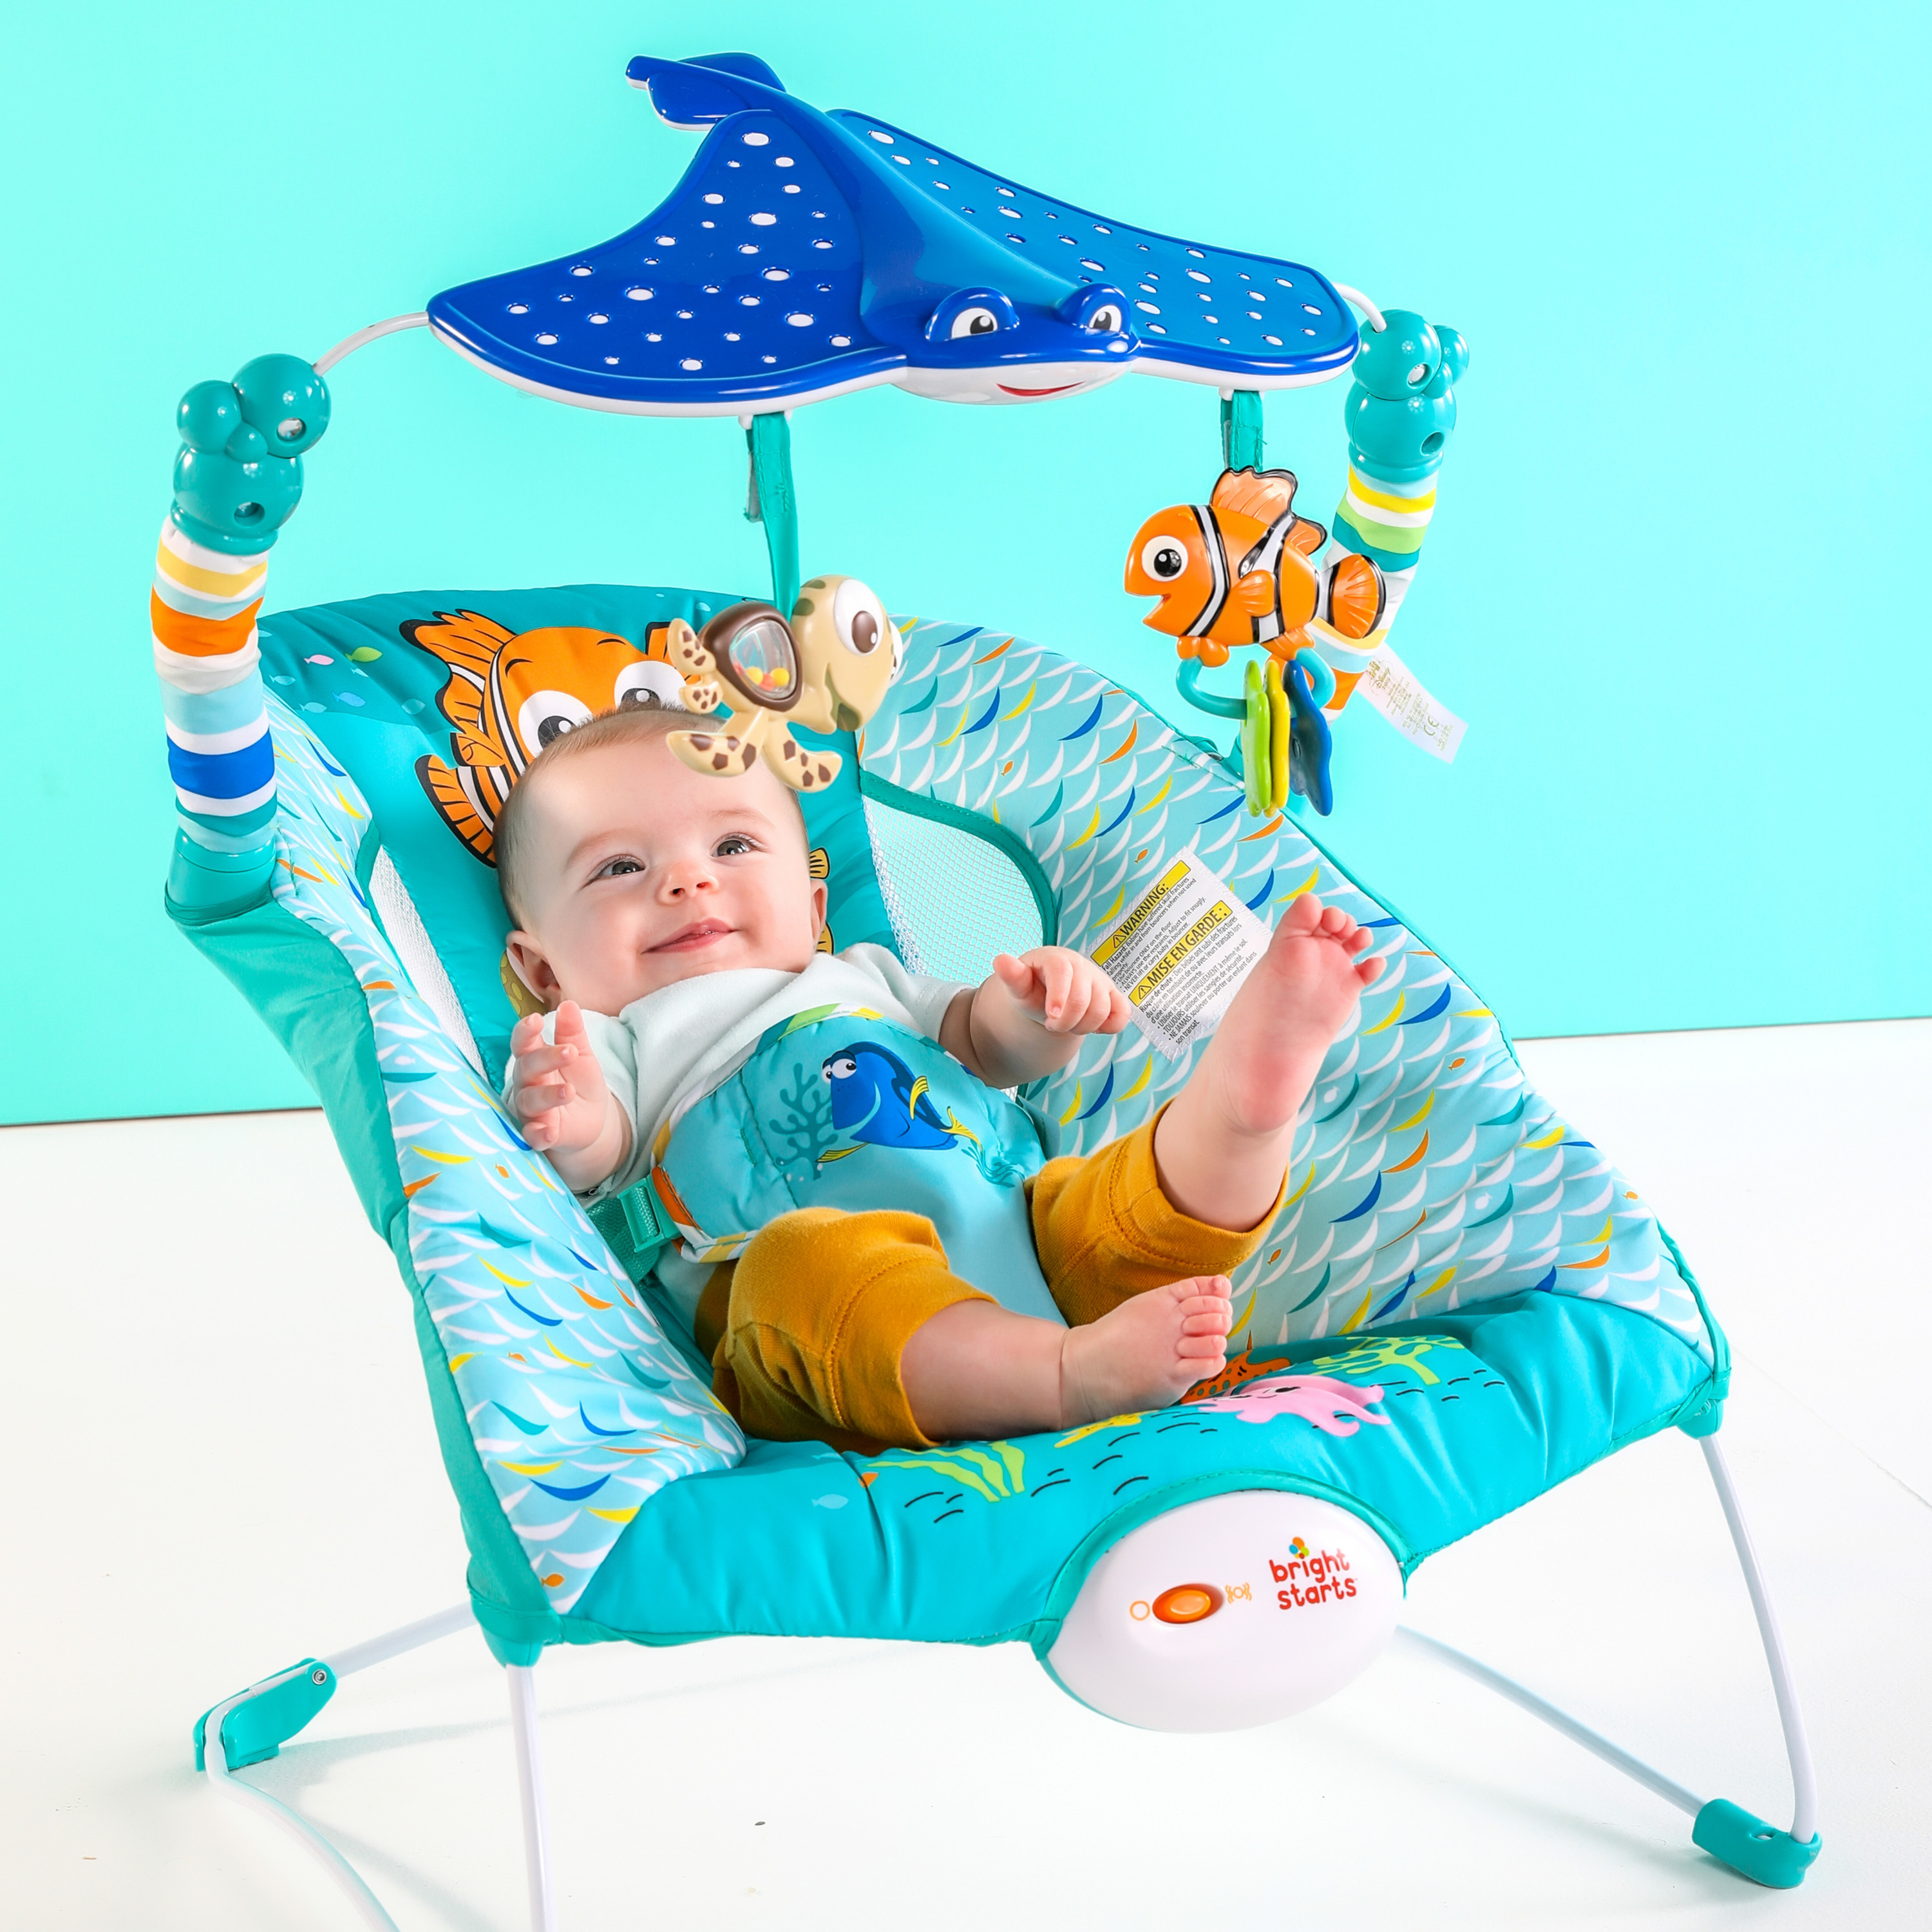 Disney Baby Finding Nemo See & Swim Bouncer - Walmart.com